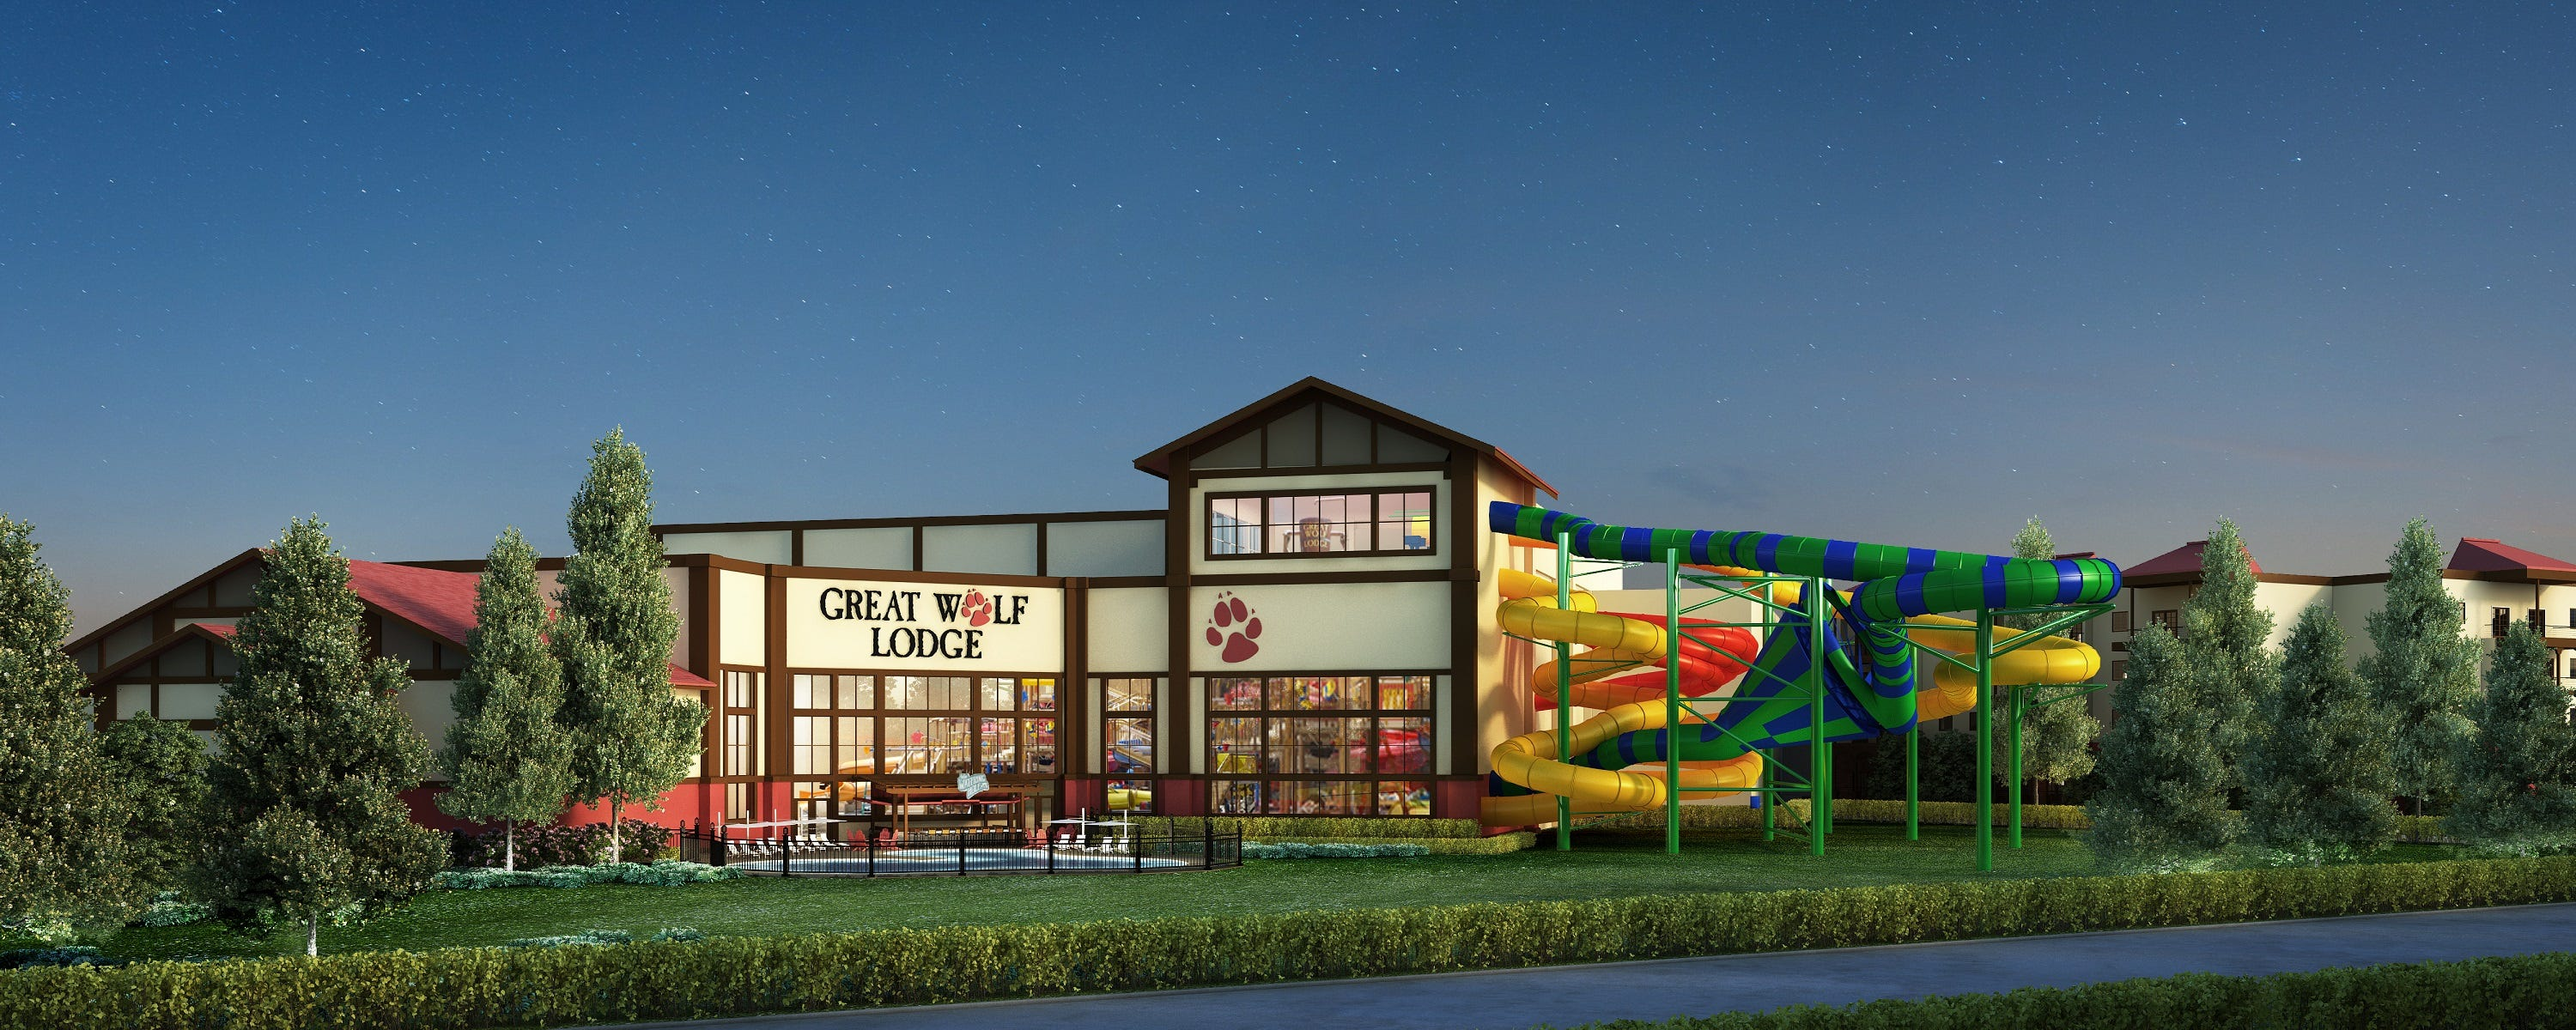 great wolf lodge will replace key lime cove in gurnee this july rh jsonline com key lime cove gurnee illinois bed bugs key lime cove gurnee